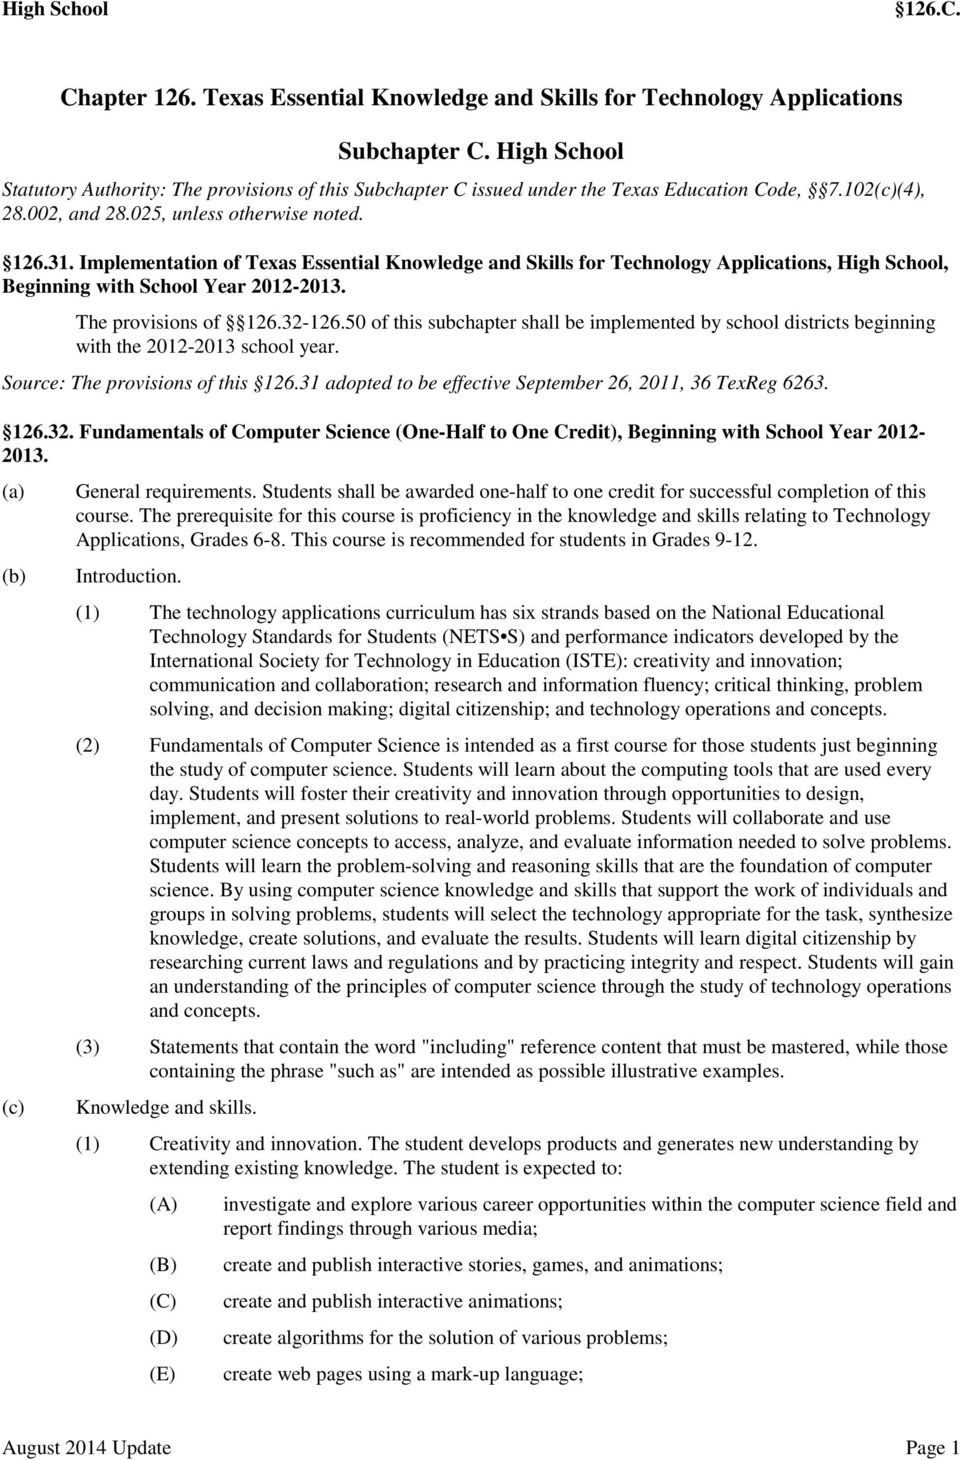 Implementation of Texas Essential Knowledge and Skills for Technology Applications, High School, Beginning with School Year 2012-2013. The provisions of 126.32-126.